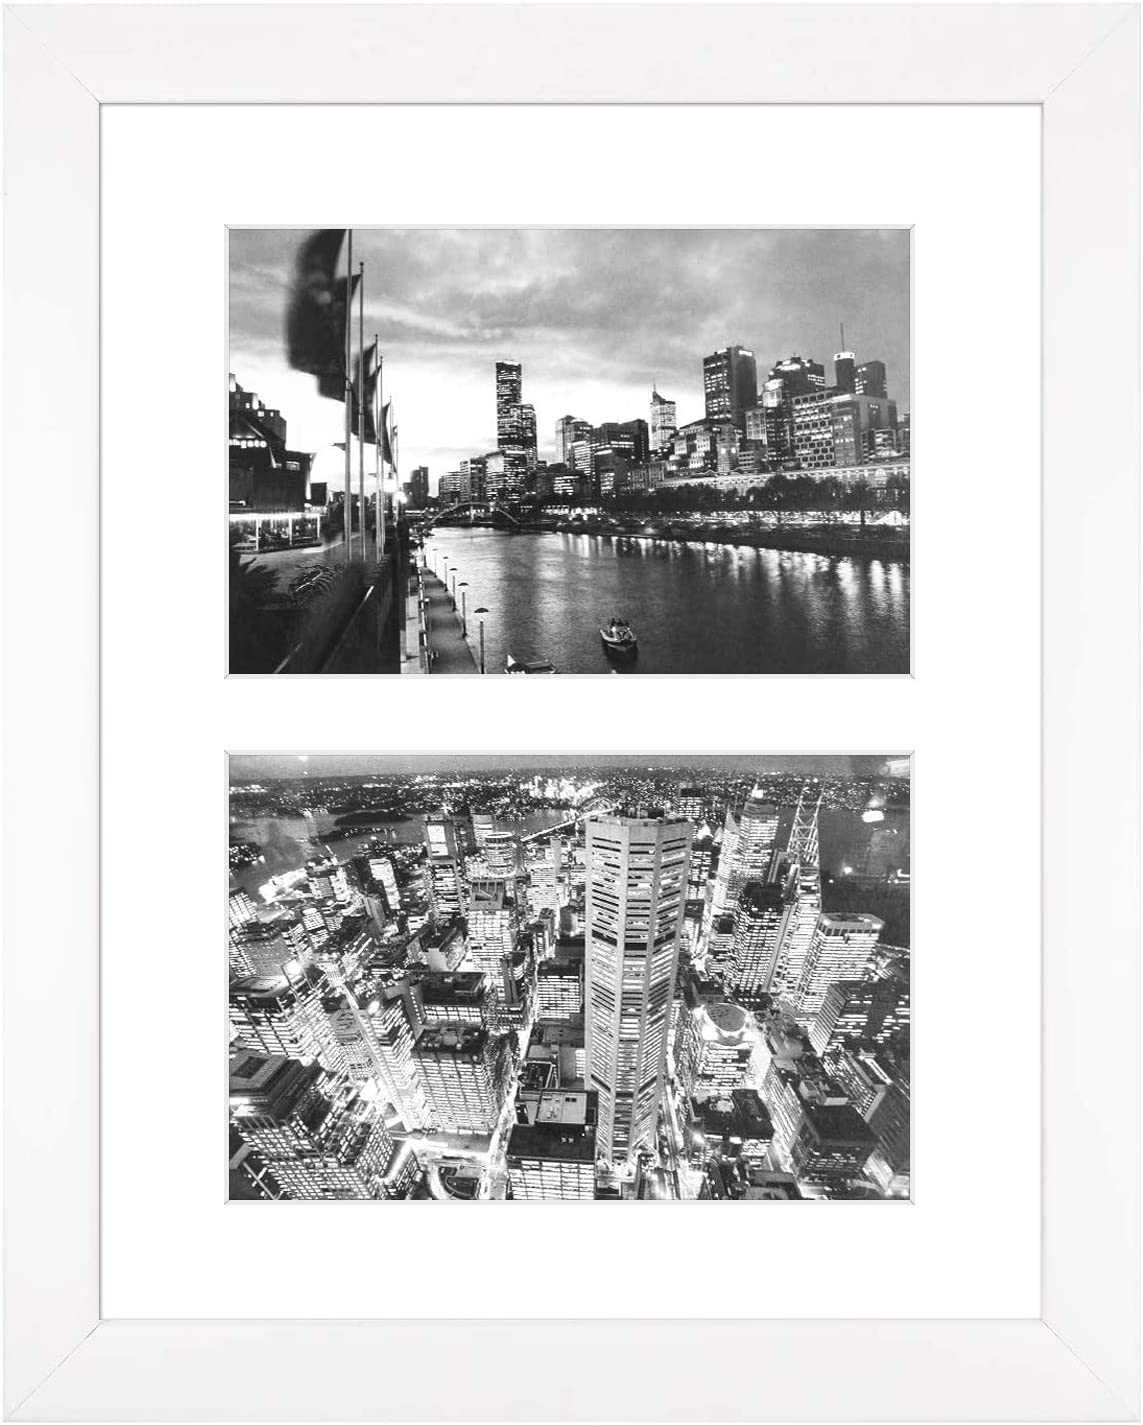 Two Tone Silver Multi Aperture Photo Picture Frame 10x20 Holds 5x7 Photos